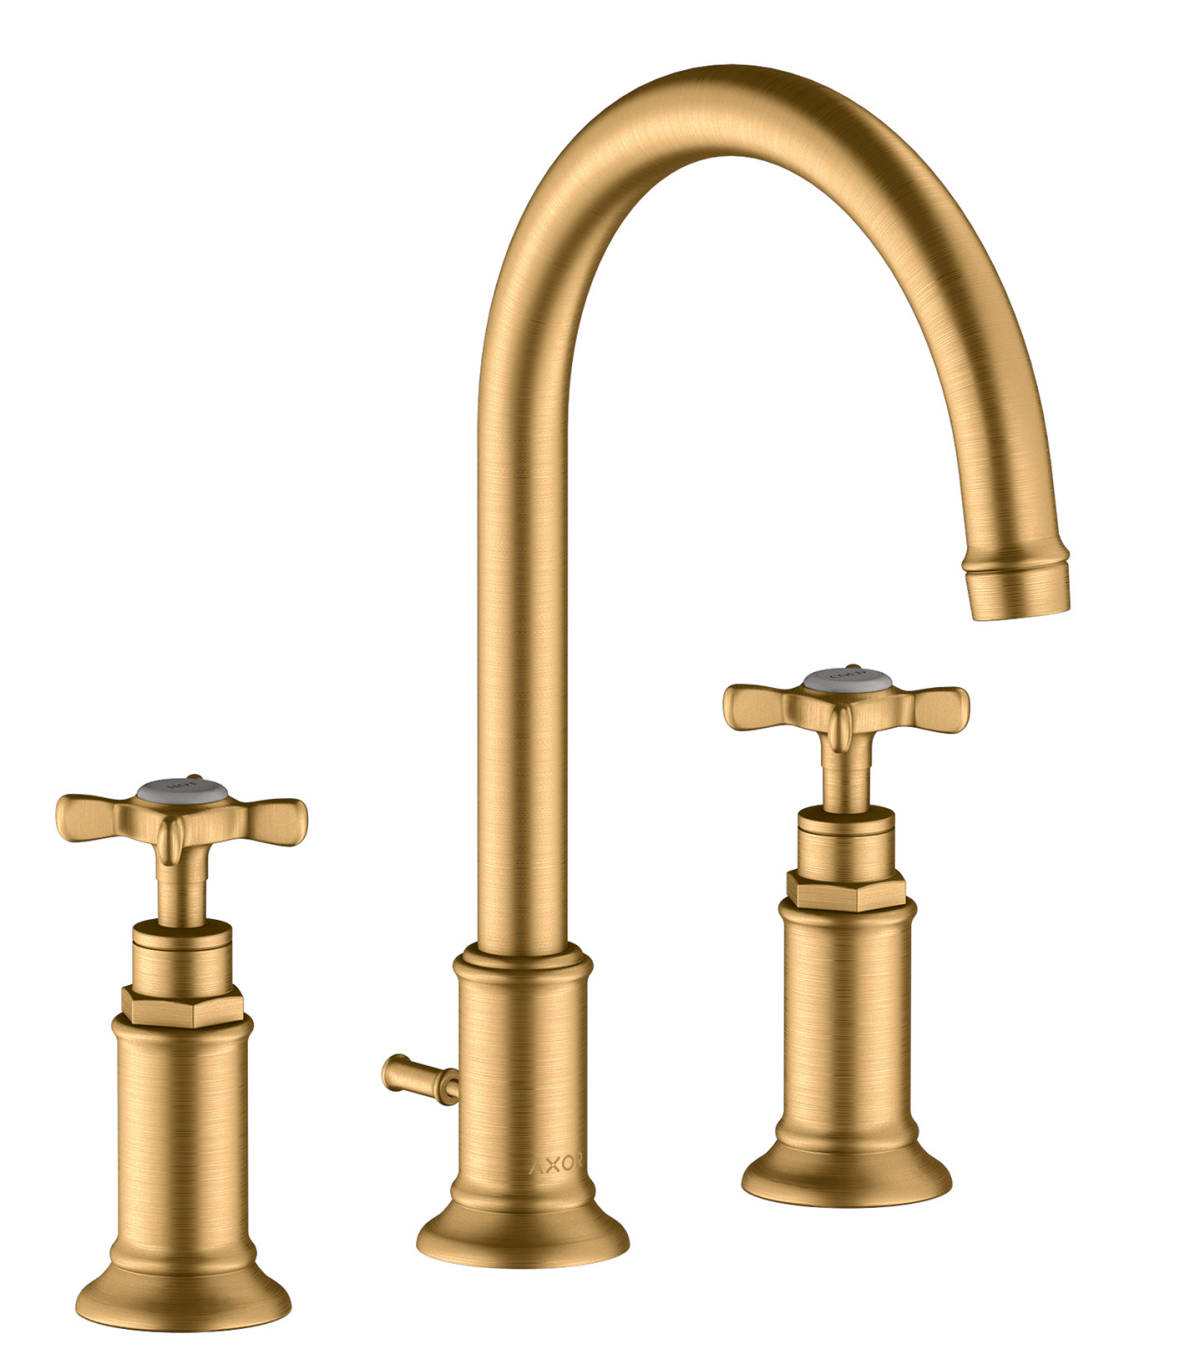 3-hole basin mixer 180 with cross handles and pop-up waste set, Brushed Brass, 16513950